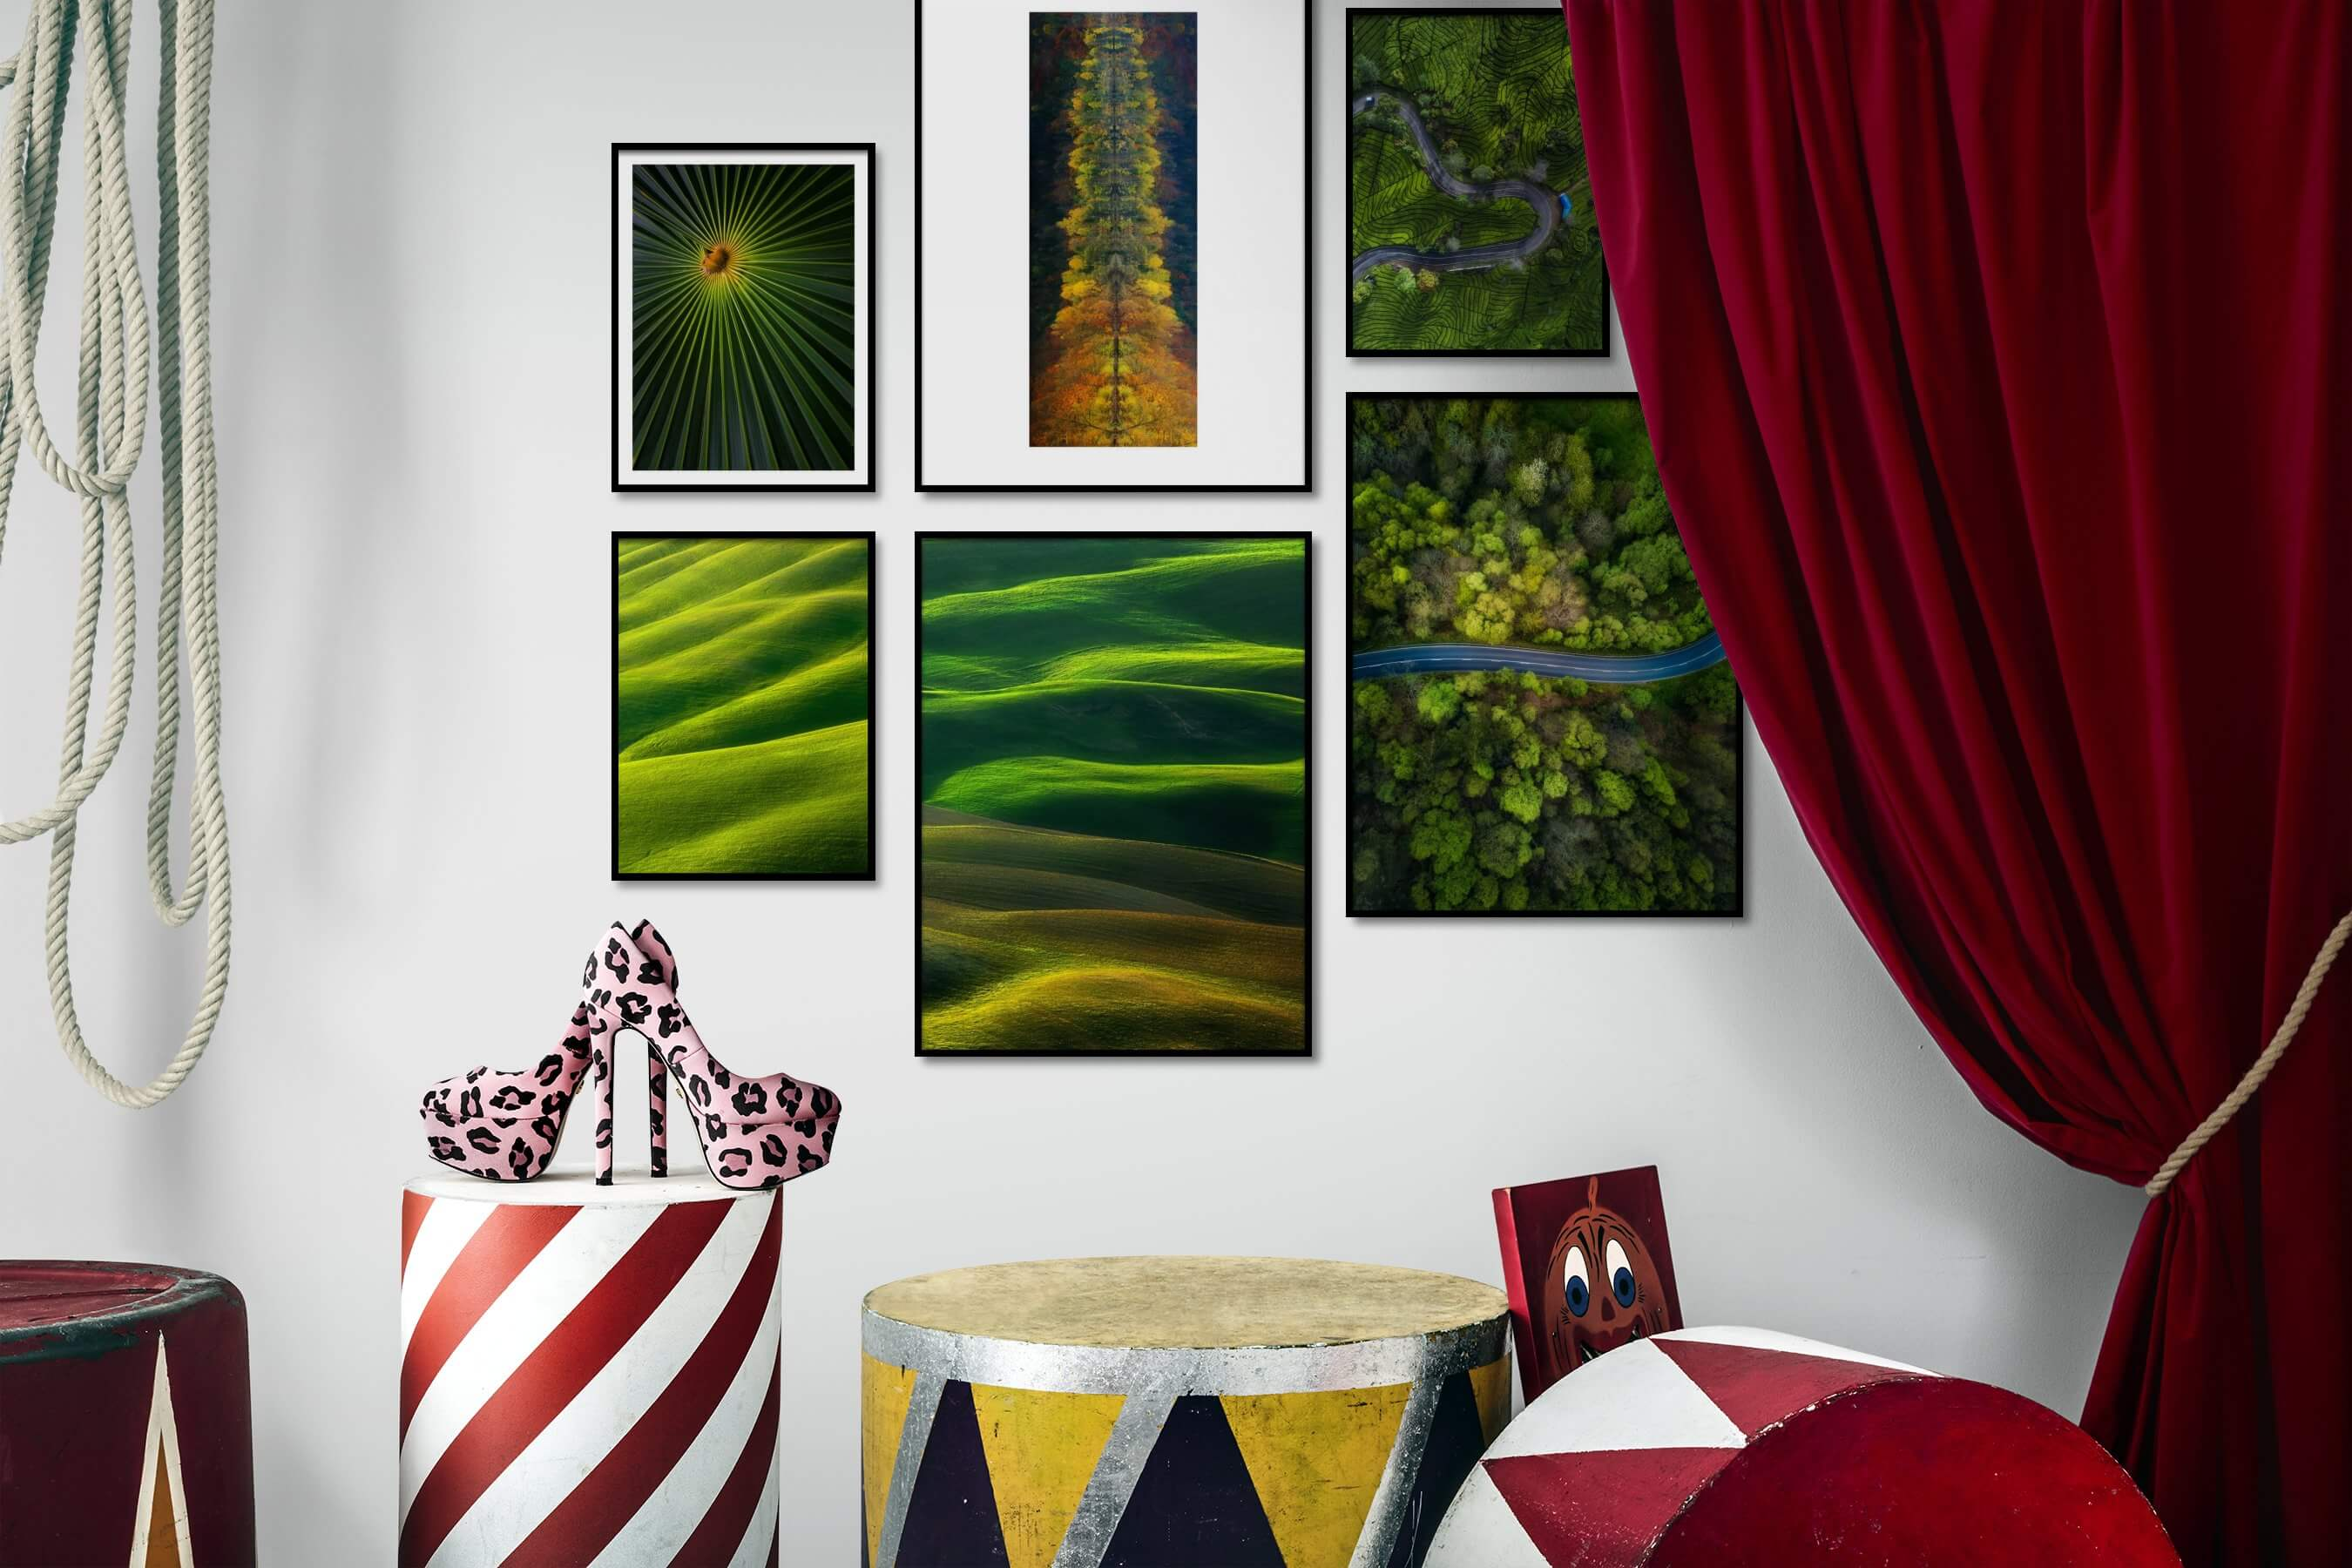 Gallery wall idea with six framed pictures arranged on a wall depicting For the Moderate, Flowers & Plants, Nature, and Country Life